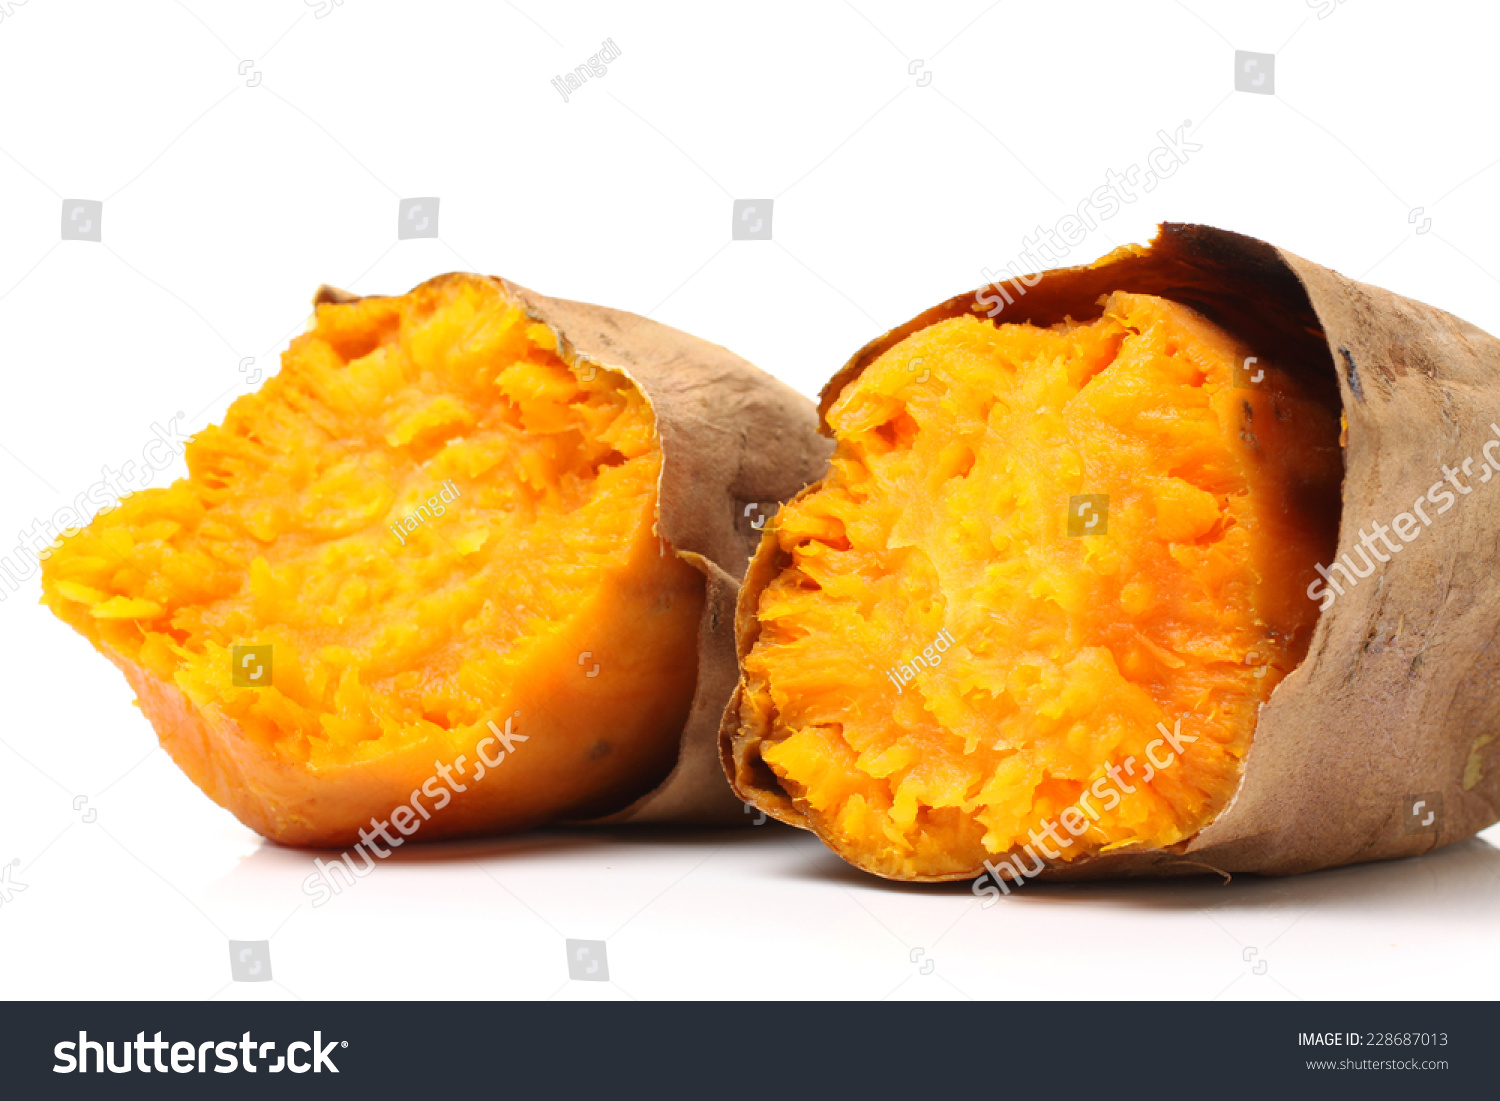 roasted sweet potatoes on a white background